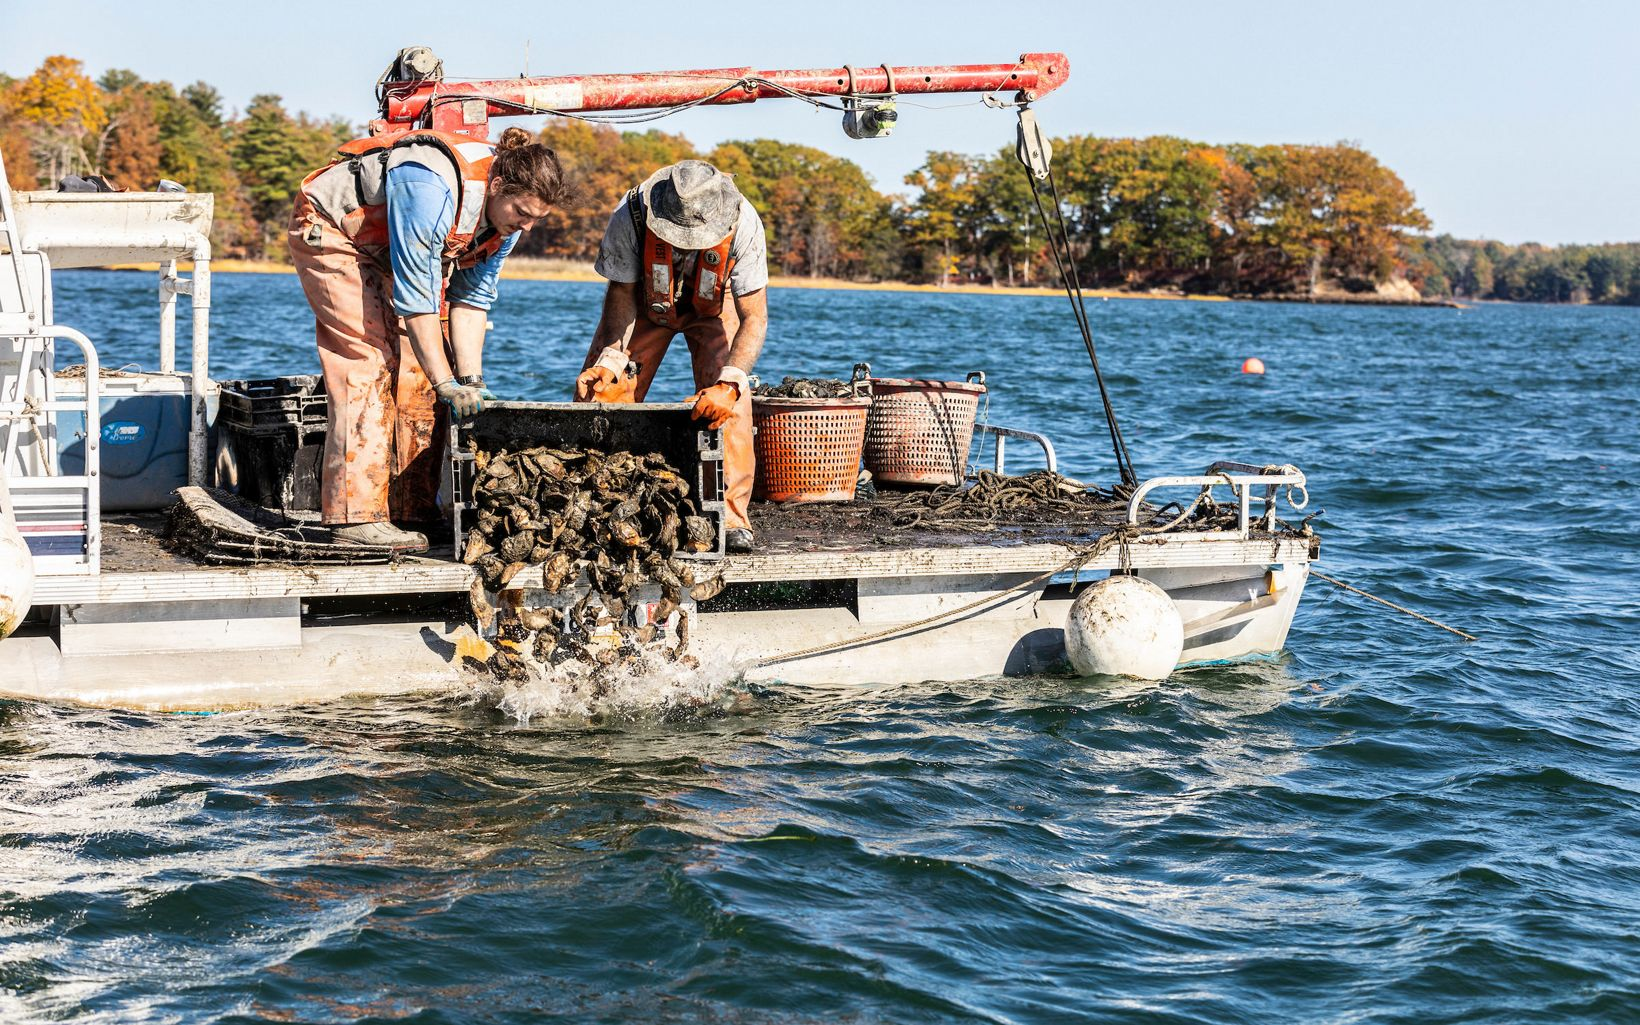 Two people on a boat dump oyster shells back into the water